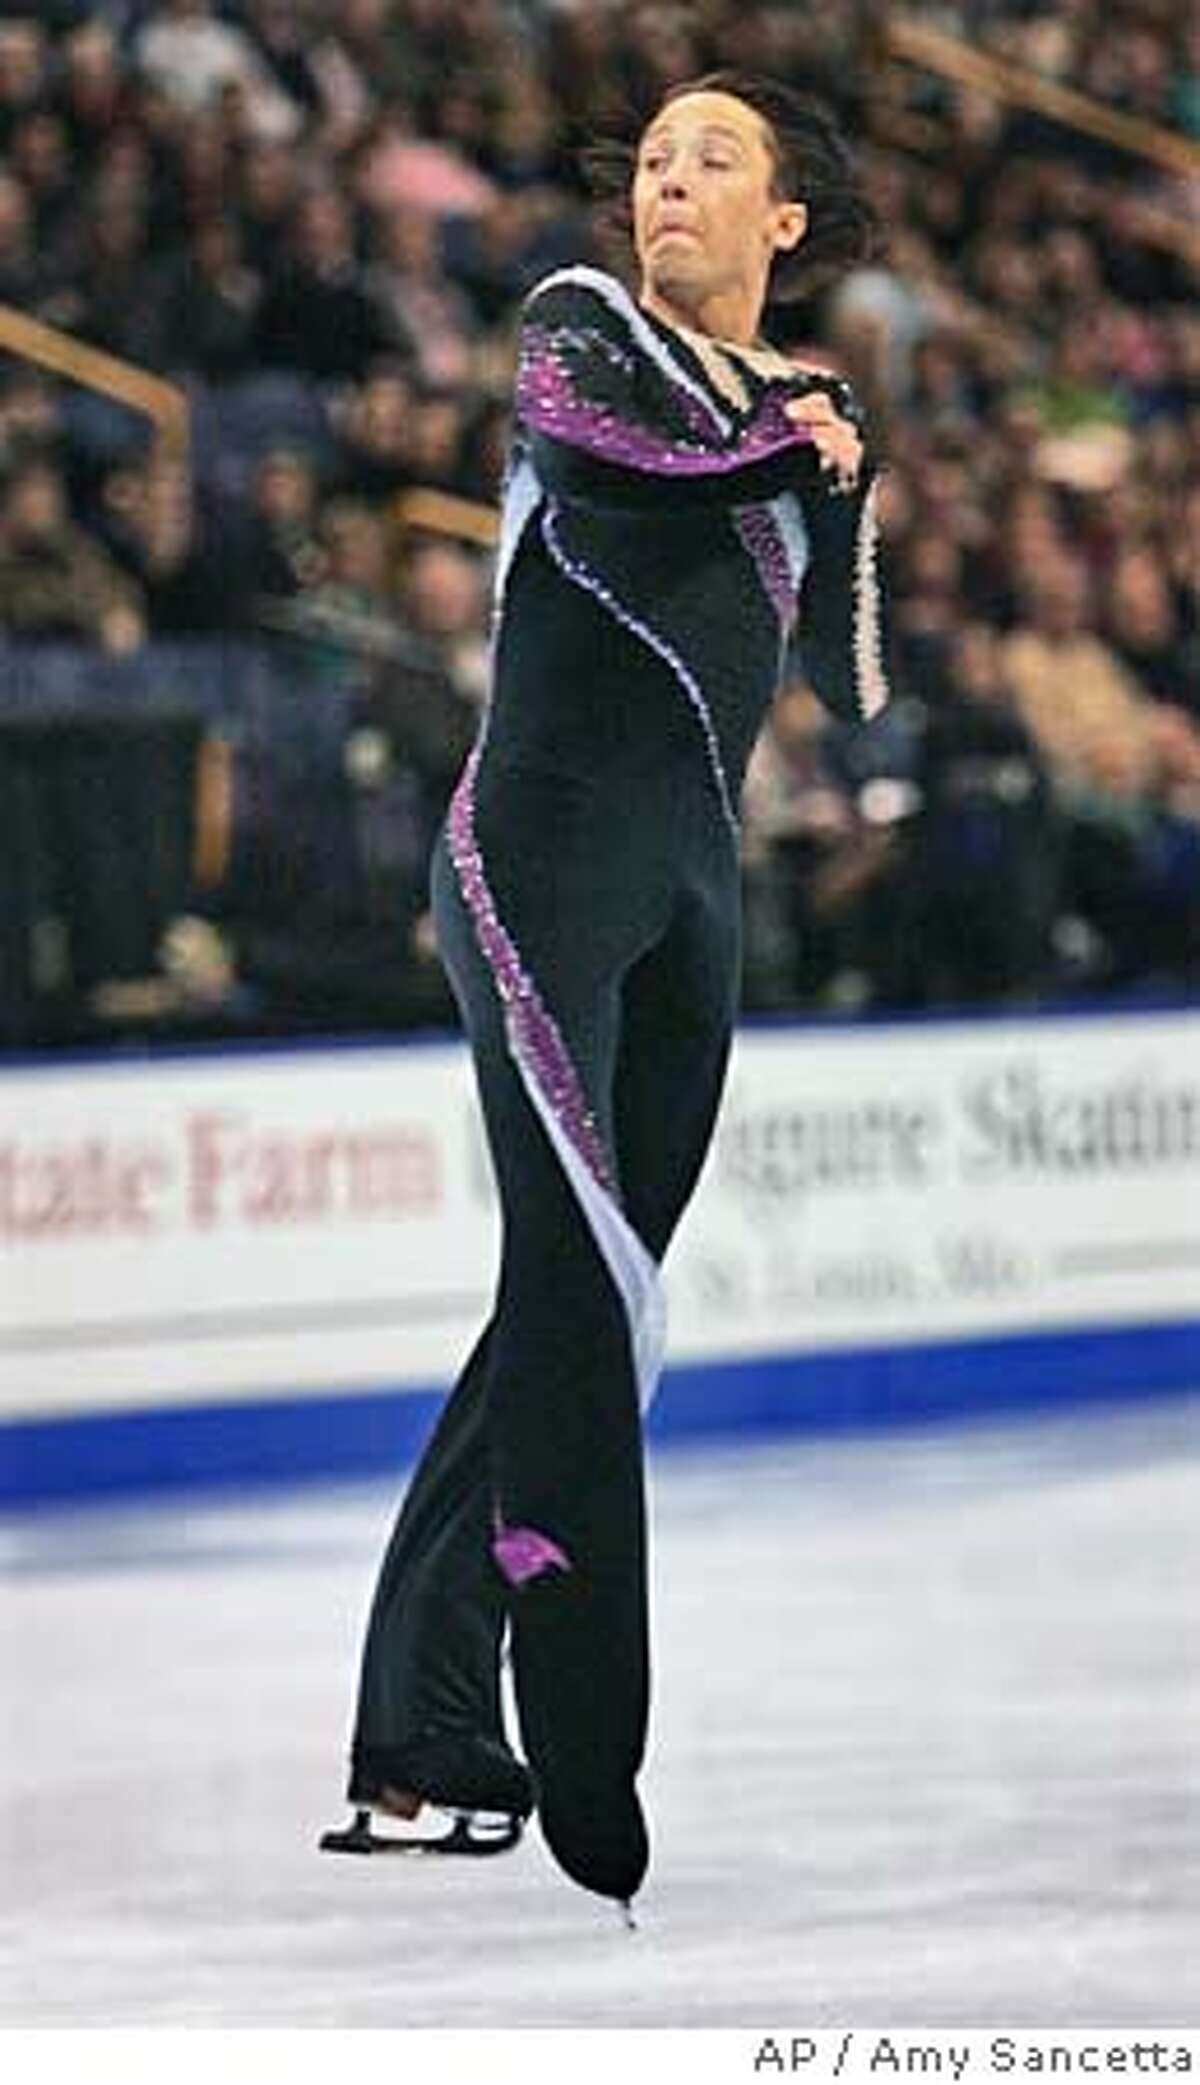 Two-time U.S. figure skating champion Johnny Weir, from Newark, Del., completes a lutz during mens free skate event at the U.S. Figure Skating Championships in St. Louis, Saturday, Jan. 14, 2006. Weir finished in first place to earn a place on the U.S. Olympic team. (AP Photo/Amy Sancetta)